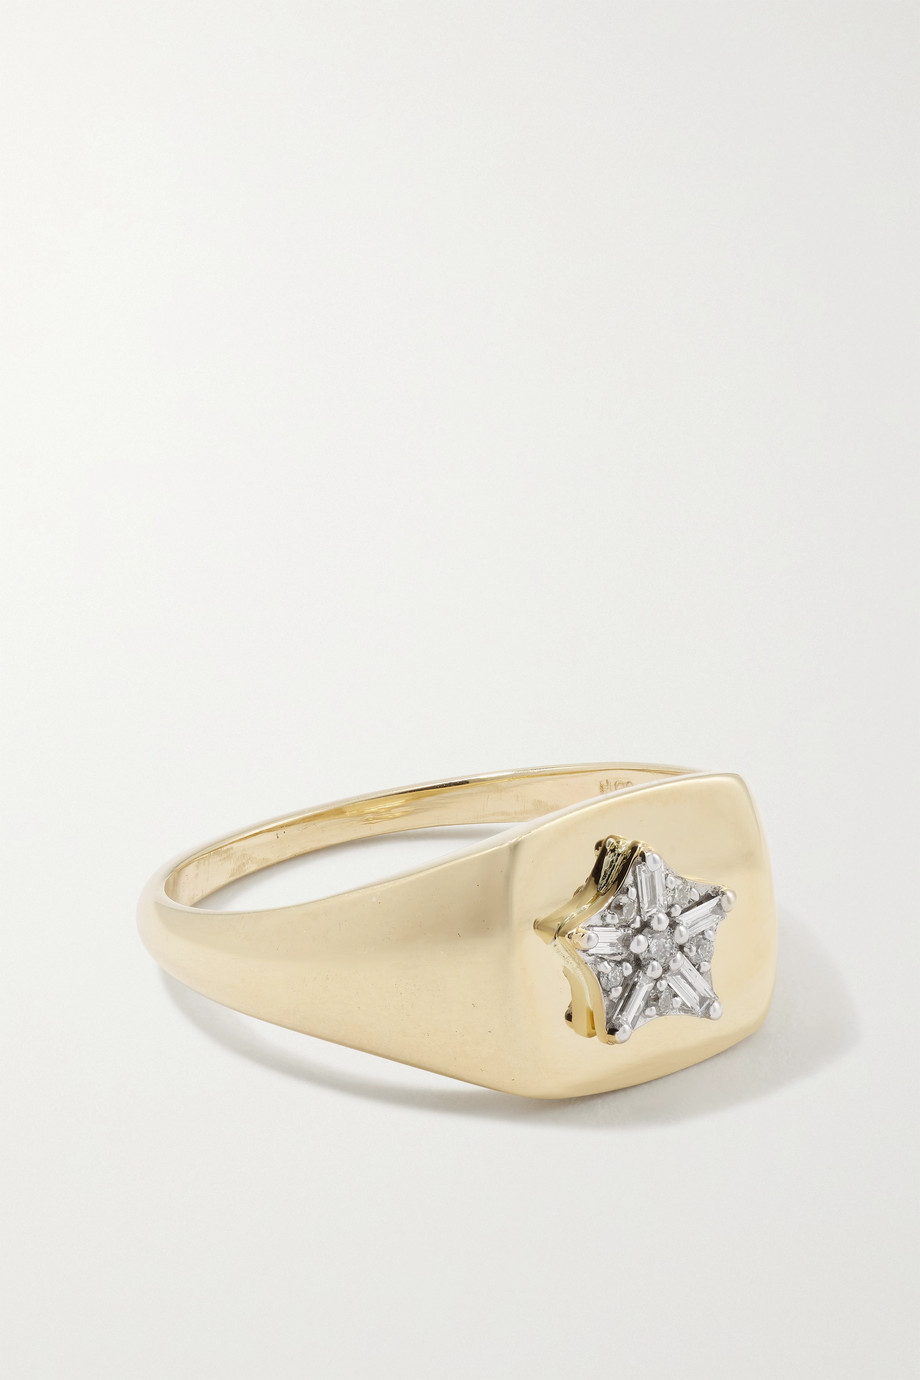 STONE AND STRAND Bague en or 10 carats (416/1000) et diamants Starbright